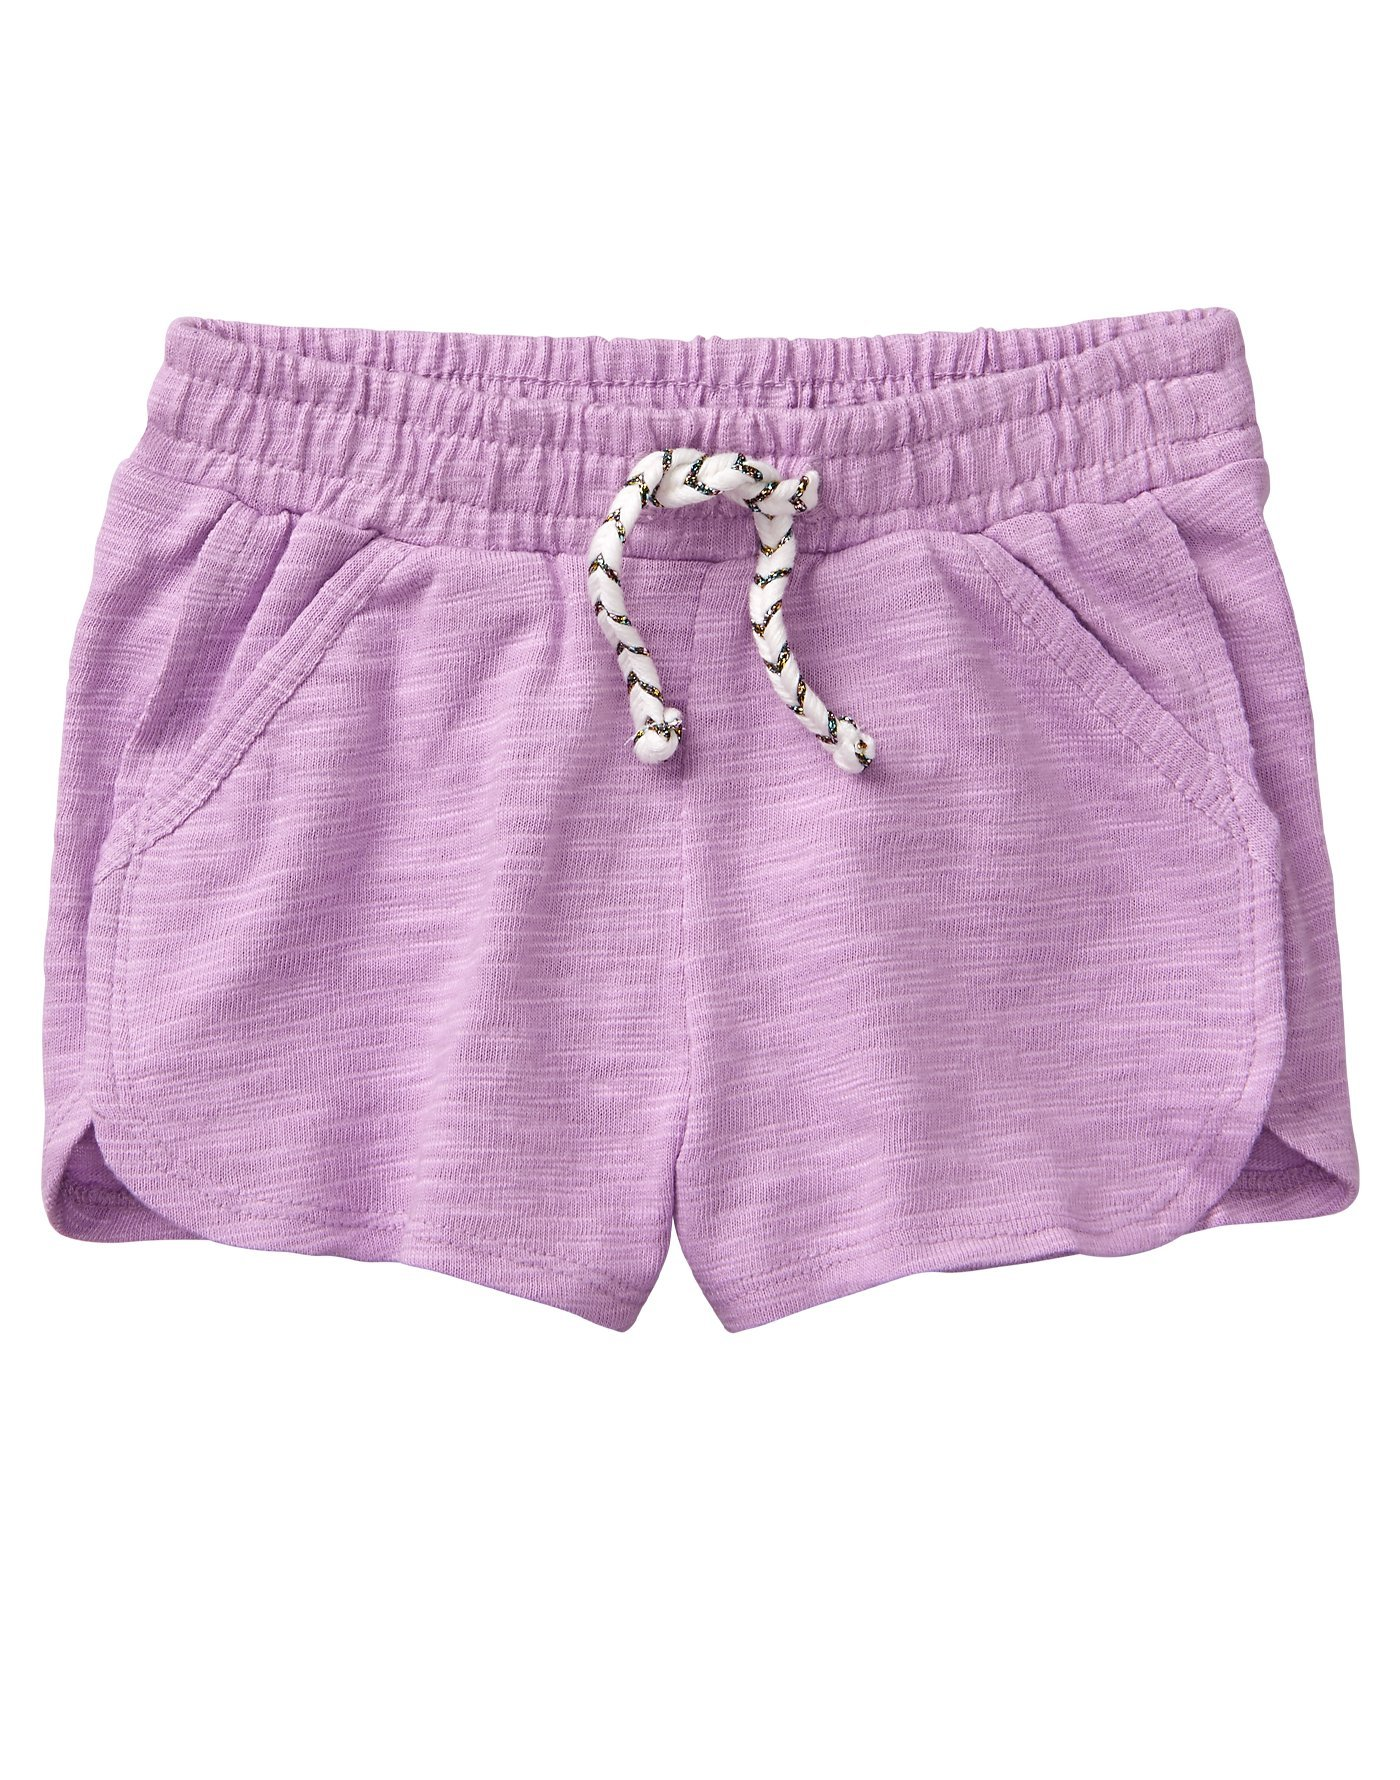 Gymboree Toddler Girls' Dolphin Short, Lilac, 2T